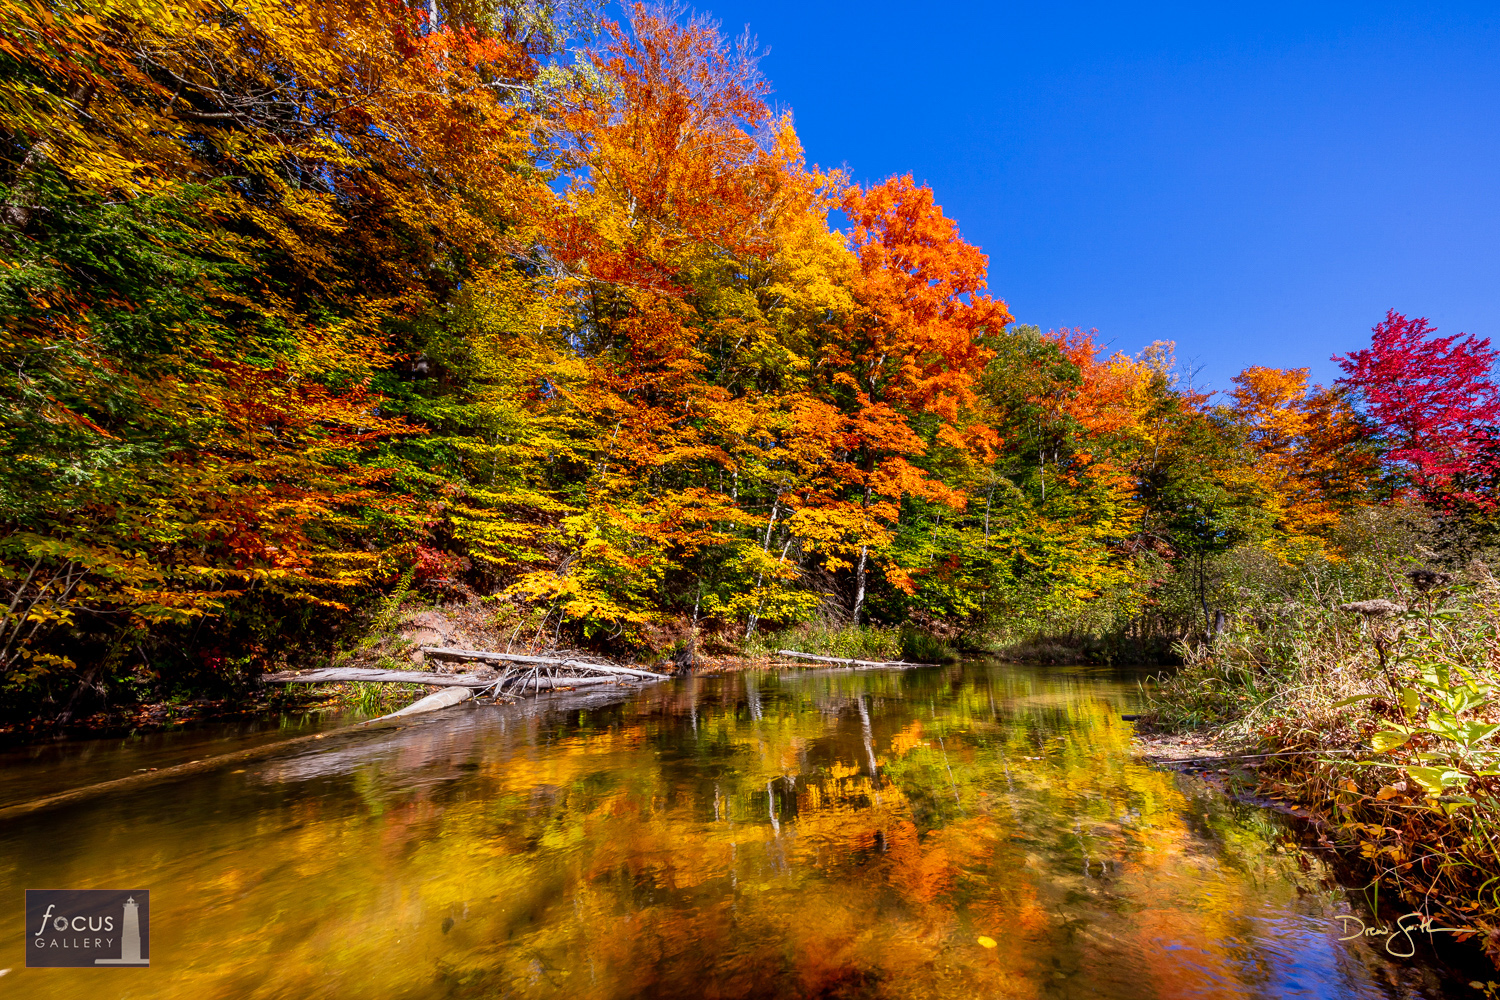 Photo © Drew Smith Peak autumn color along the shores of the Betsie River on a gorgeous fall day.